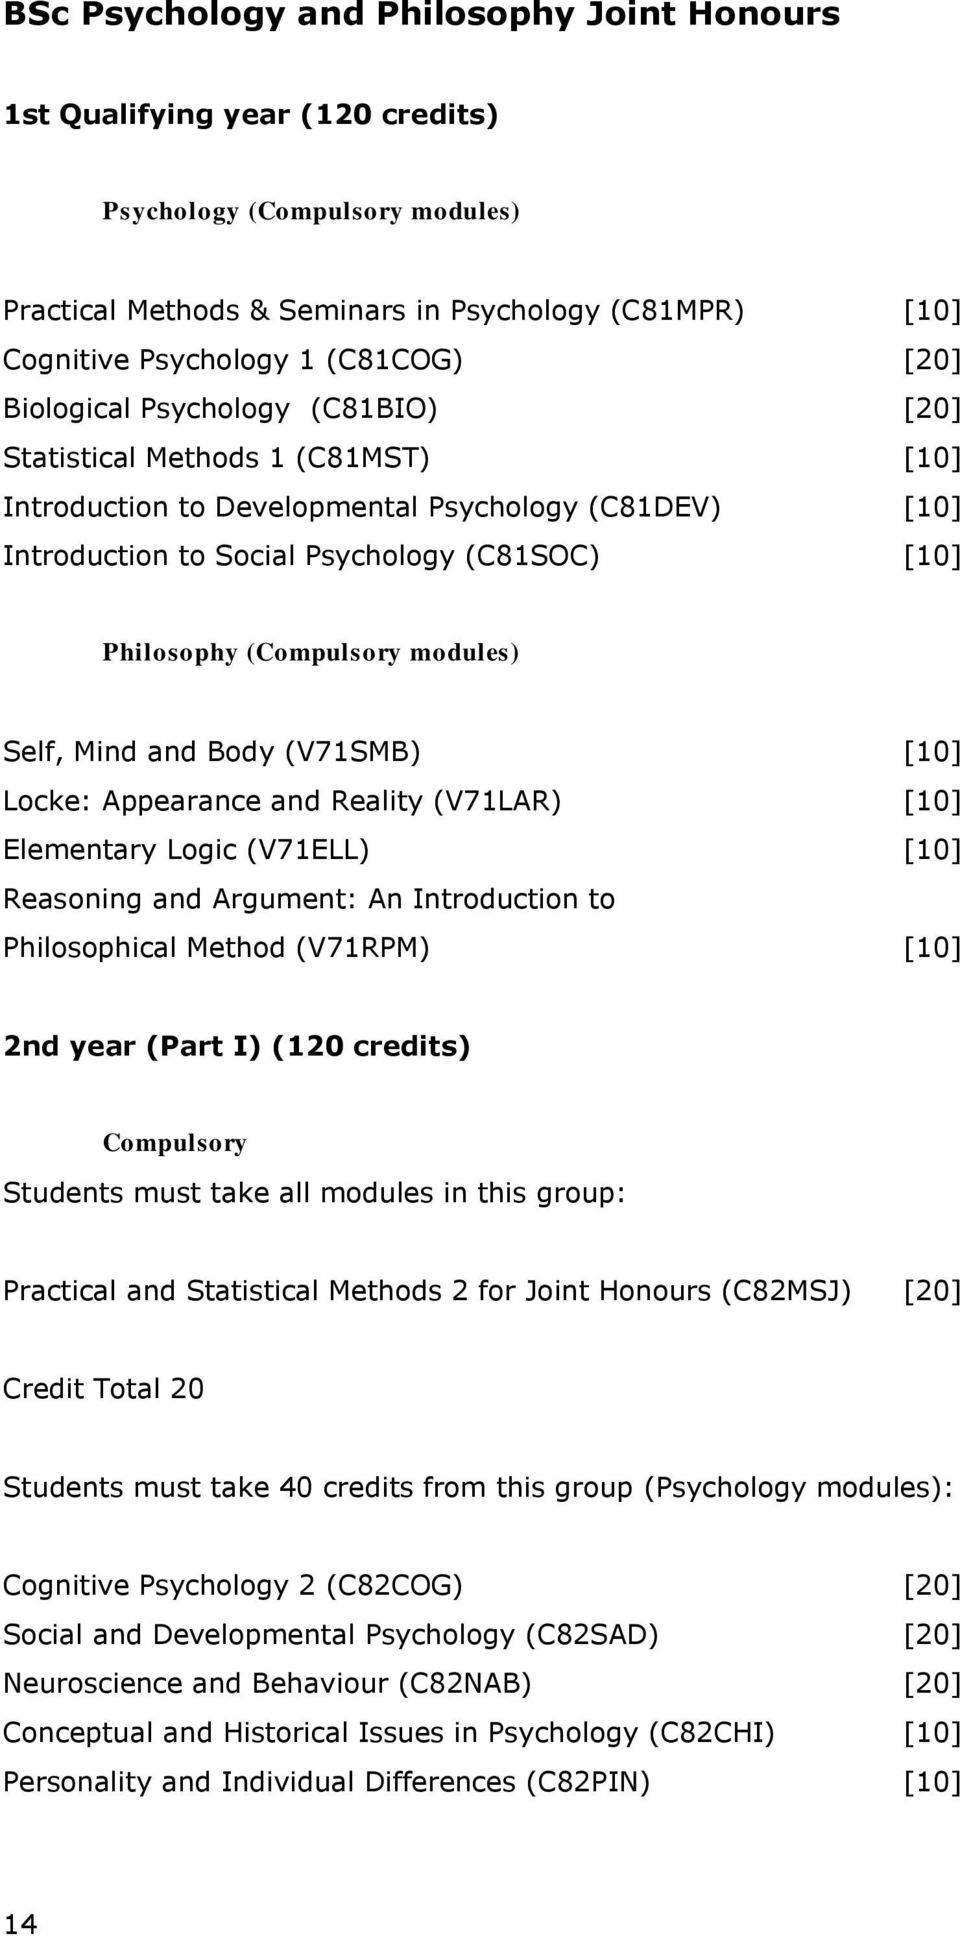 (Compulsory modules) Self, Mind and Body (V71SMB) [10] Locke: Appearance and Reality (V71LAR) [10] Elementary Logic (V71ELL) [10] Reasoning and Argument: An Introduction to Philosophical Method